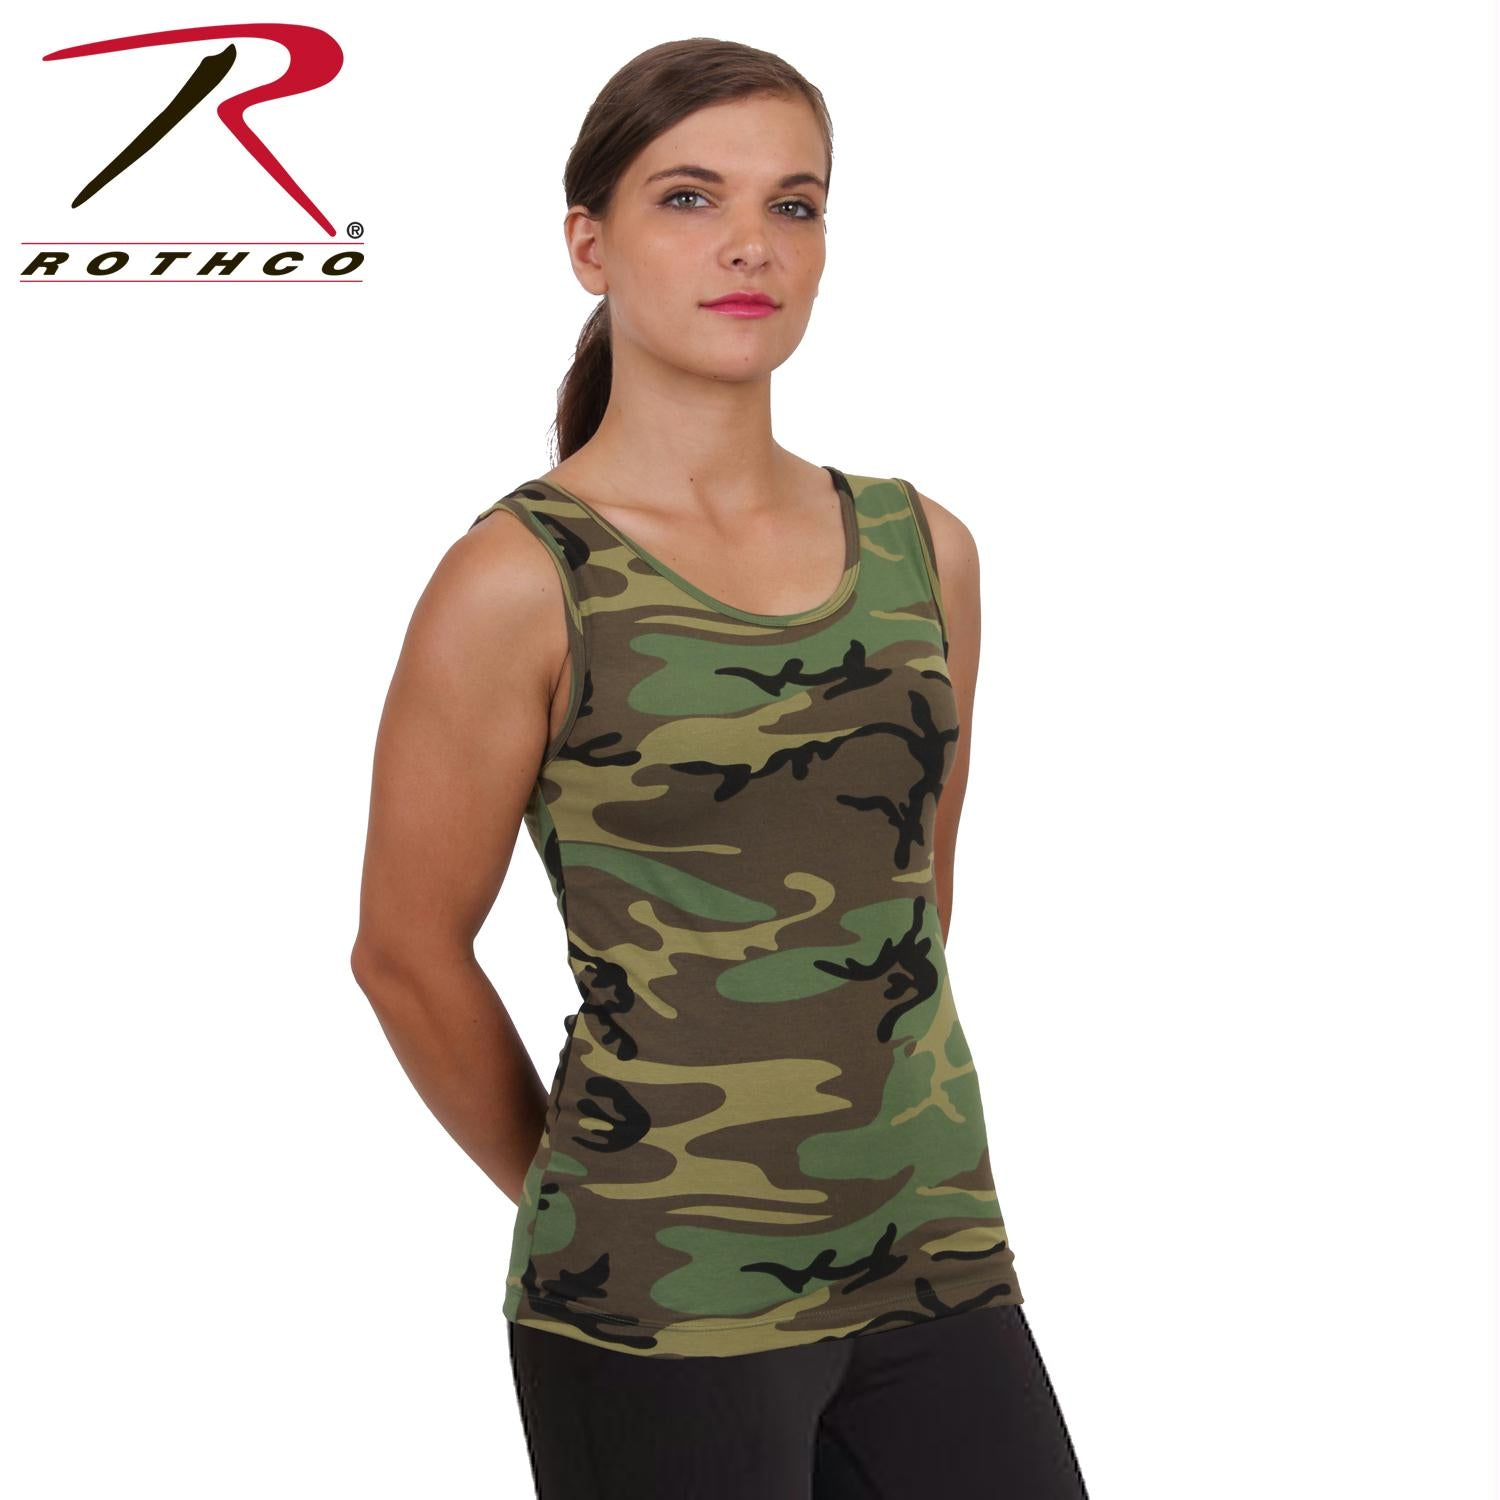 Rothco Womens Camo Stretch Tank Top - Woodland Camo / 2XL